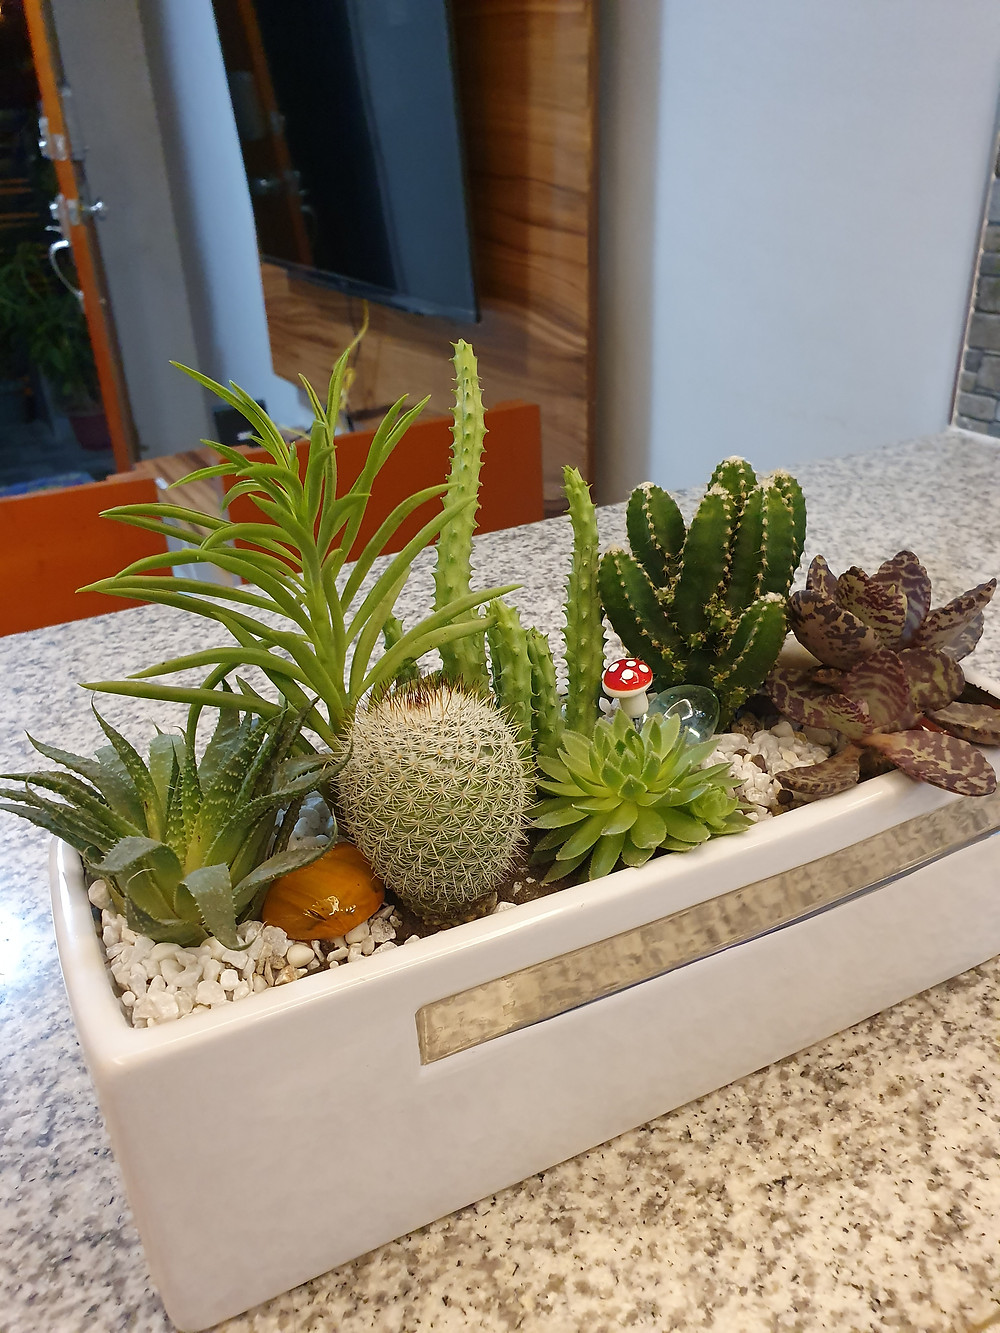 How to Care Succulent